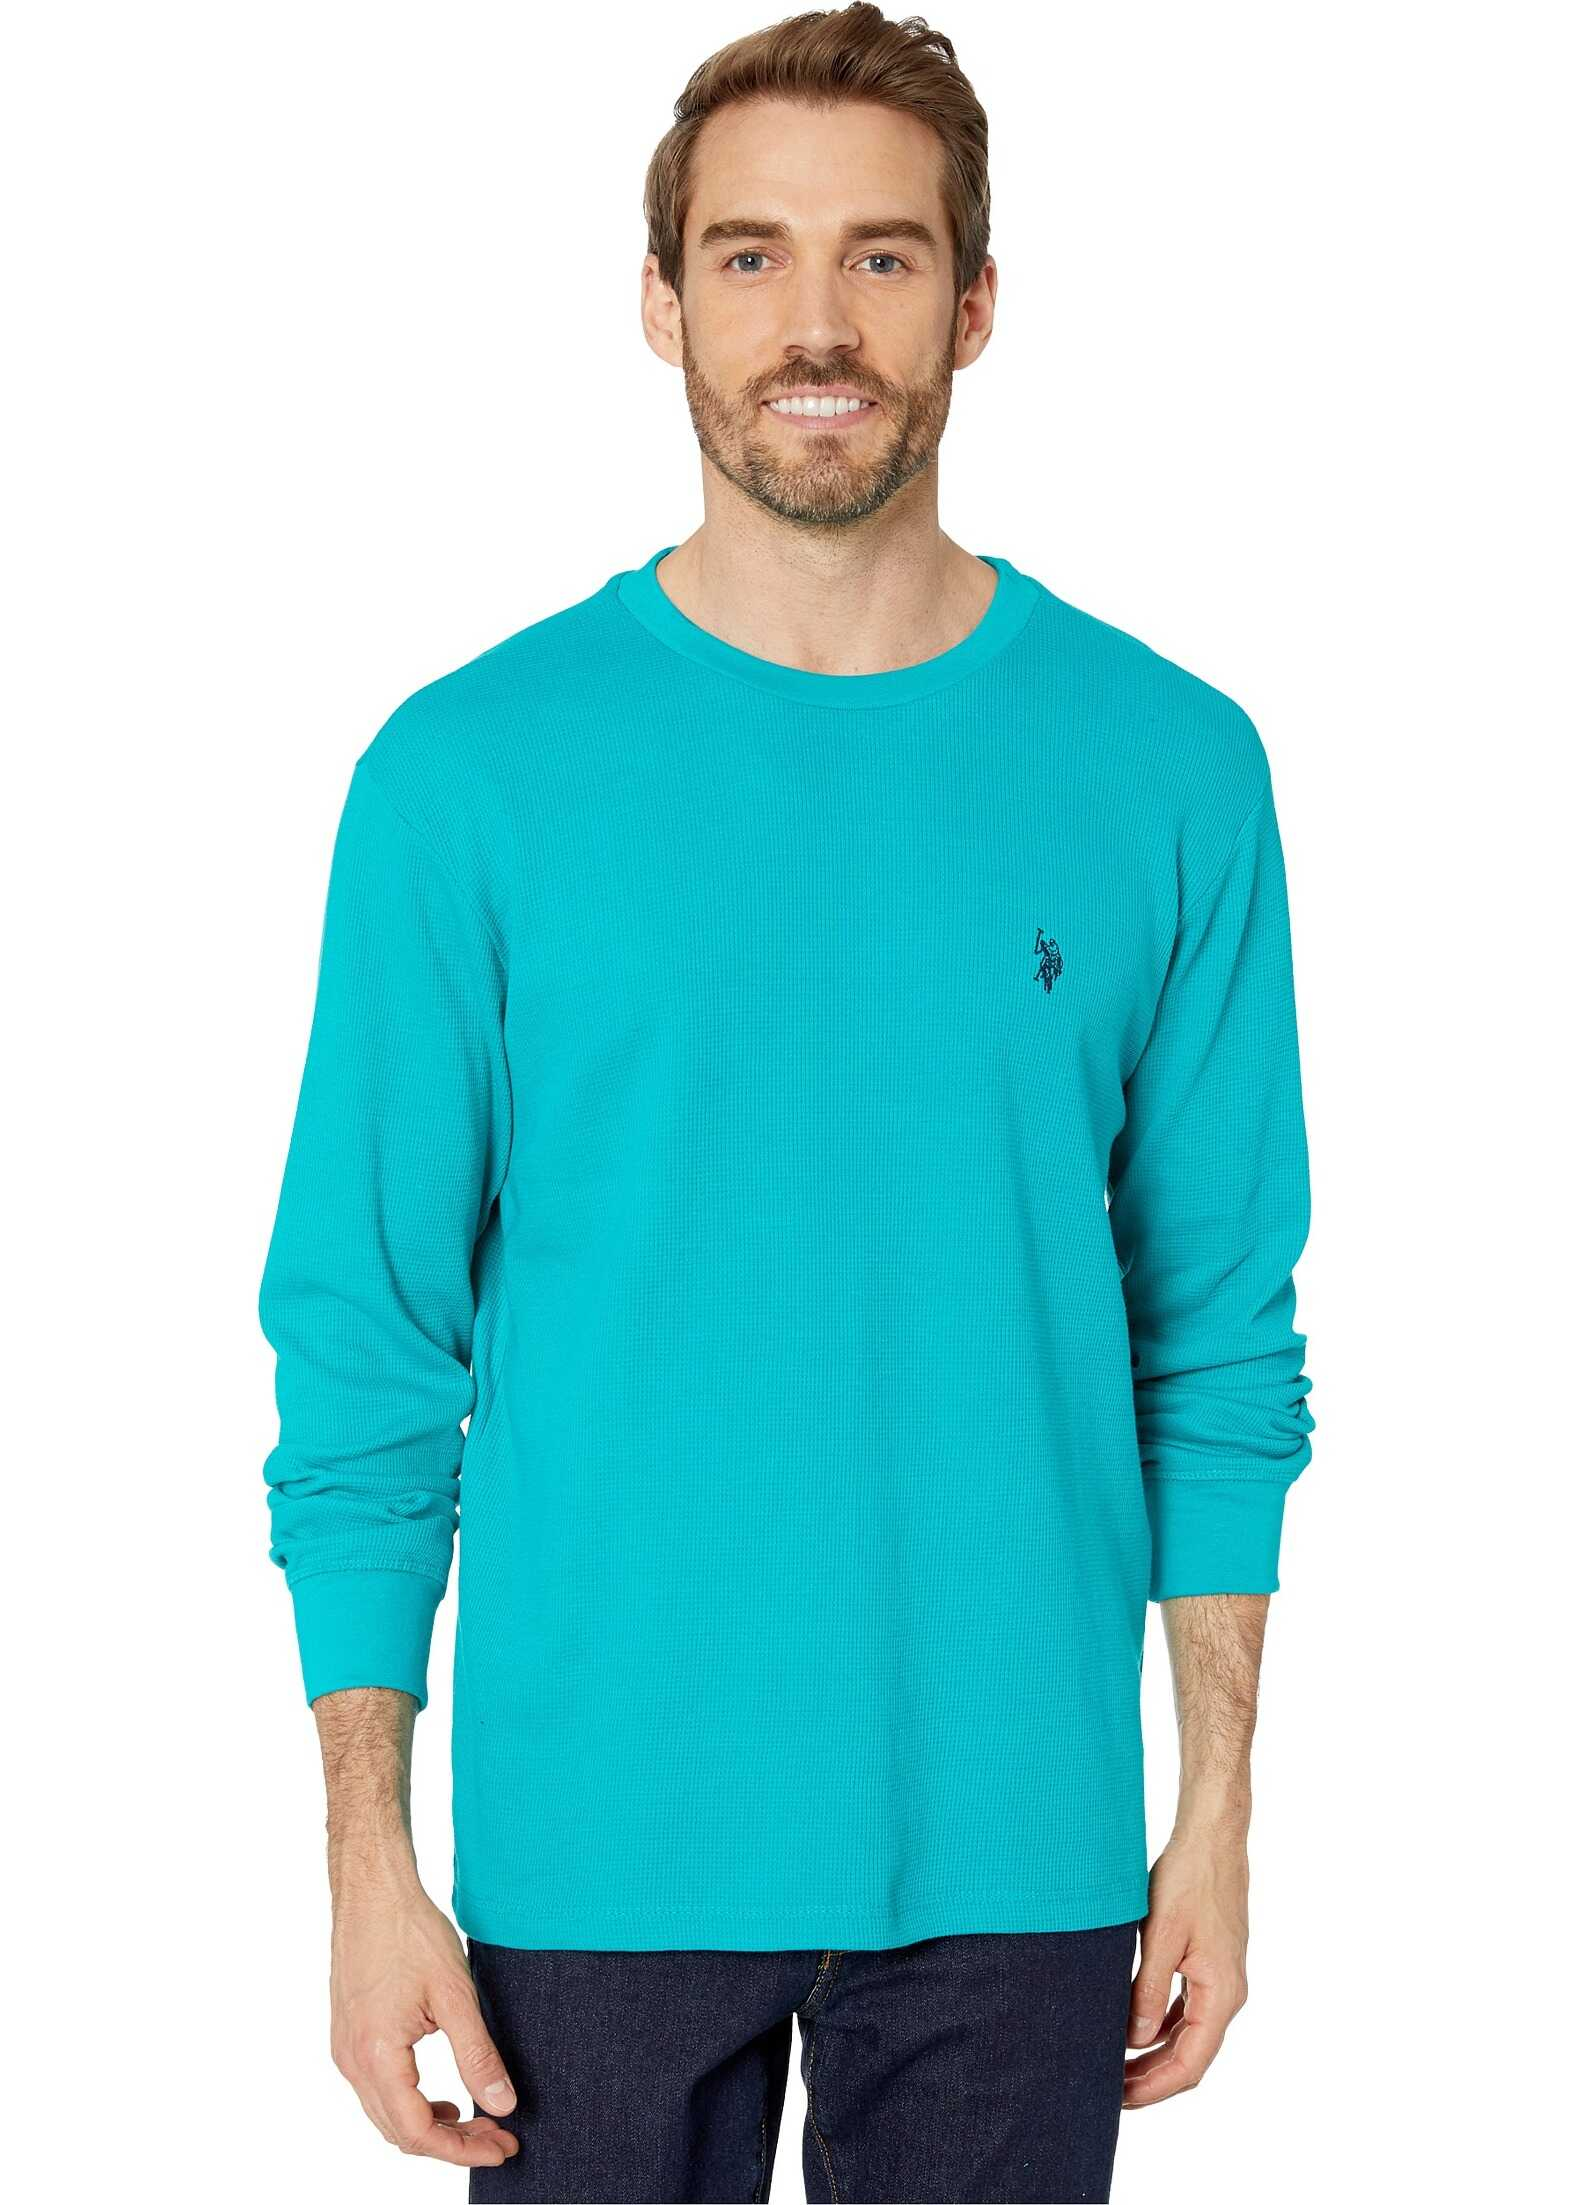 U.S. POLO ASSN. Long Sleeve Crew Neck Solid Thermal Shirt Turquoise Clash